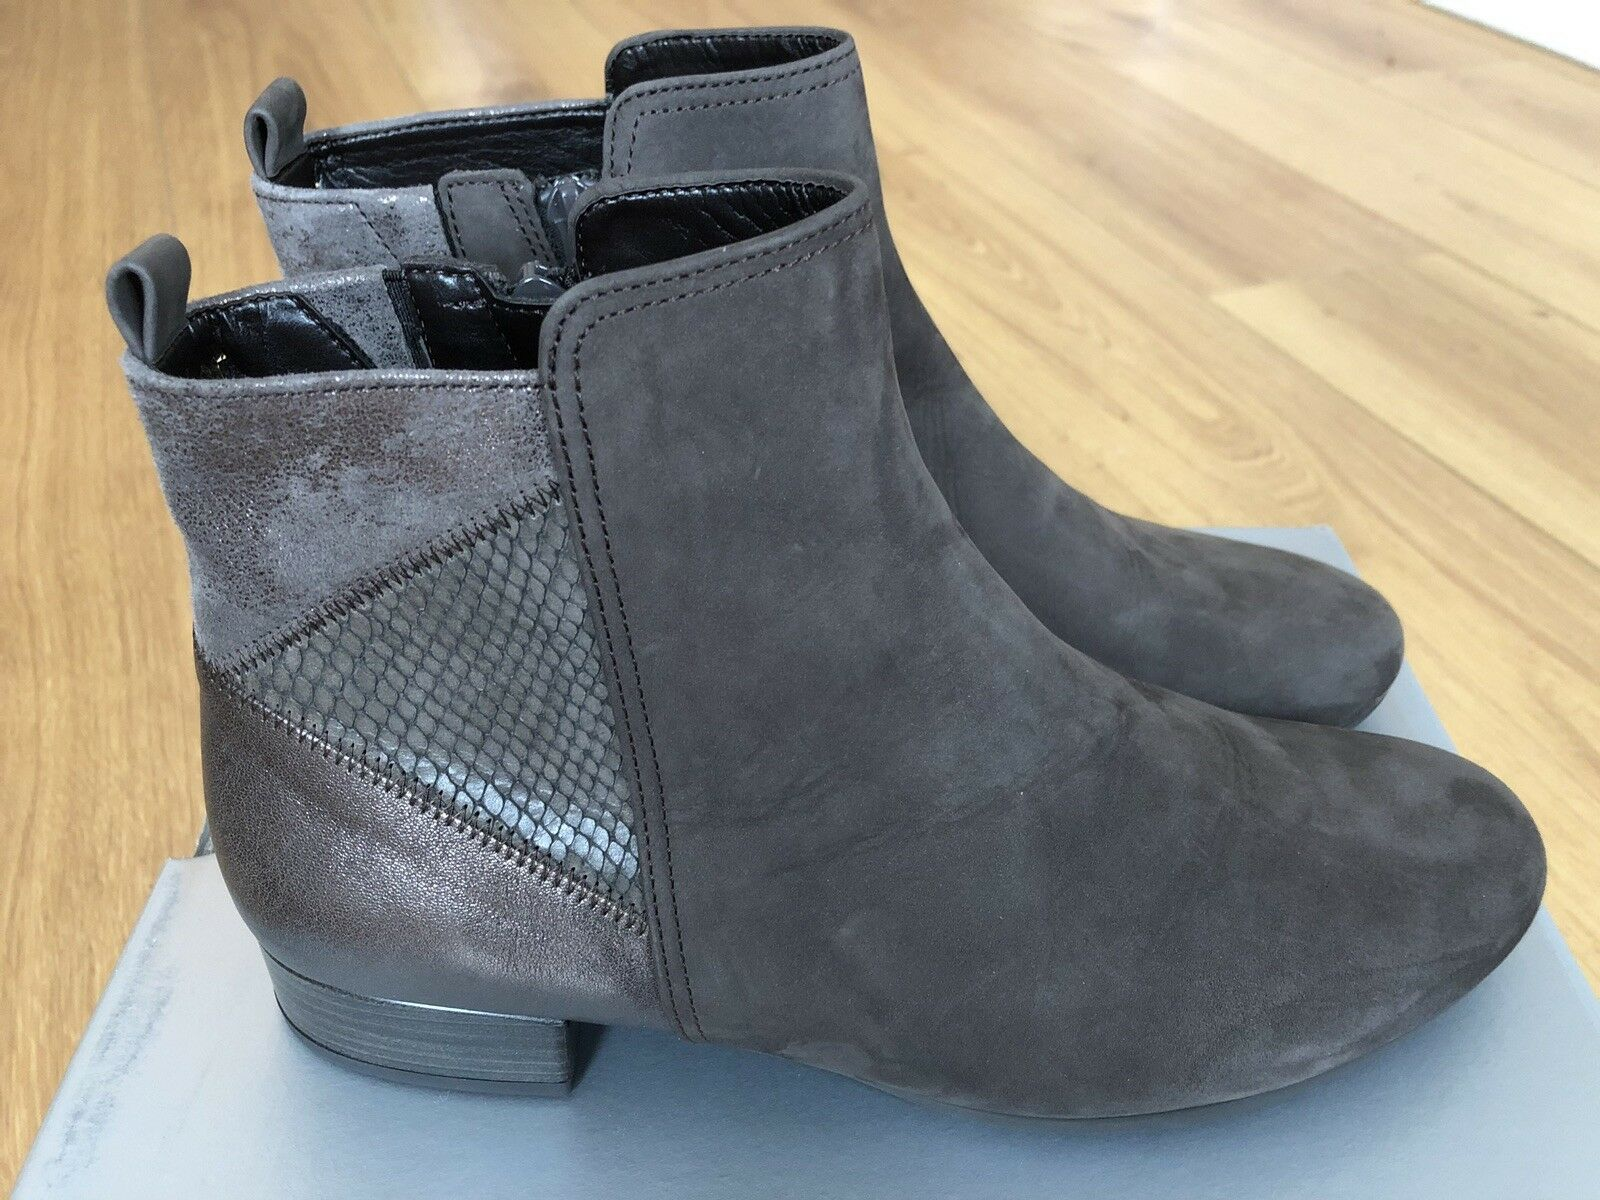 BRAND NEW GABOR ladies low heel ankle boots-grey metallic suede leather  37